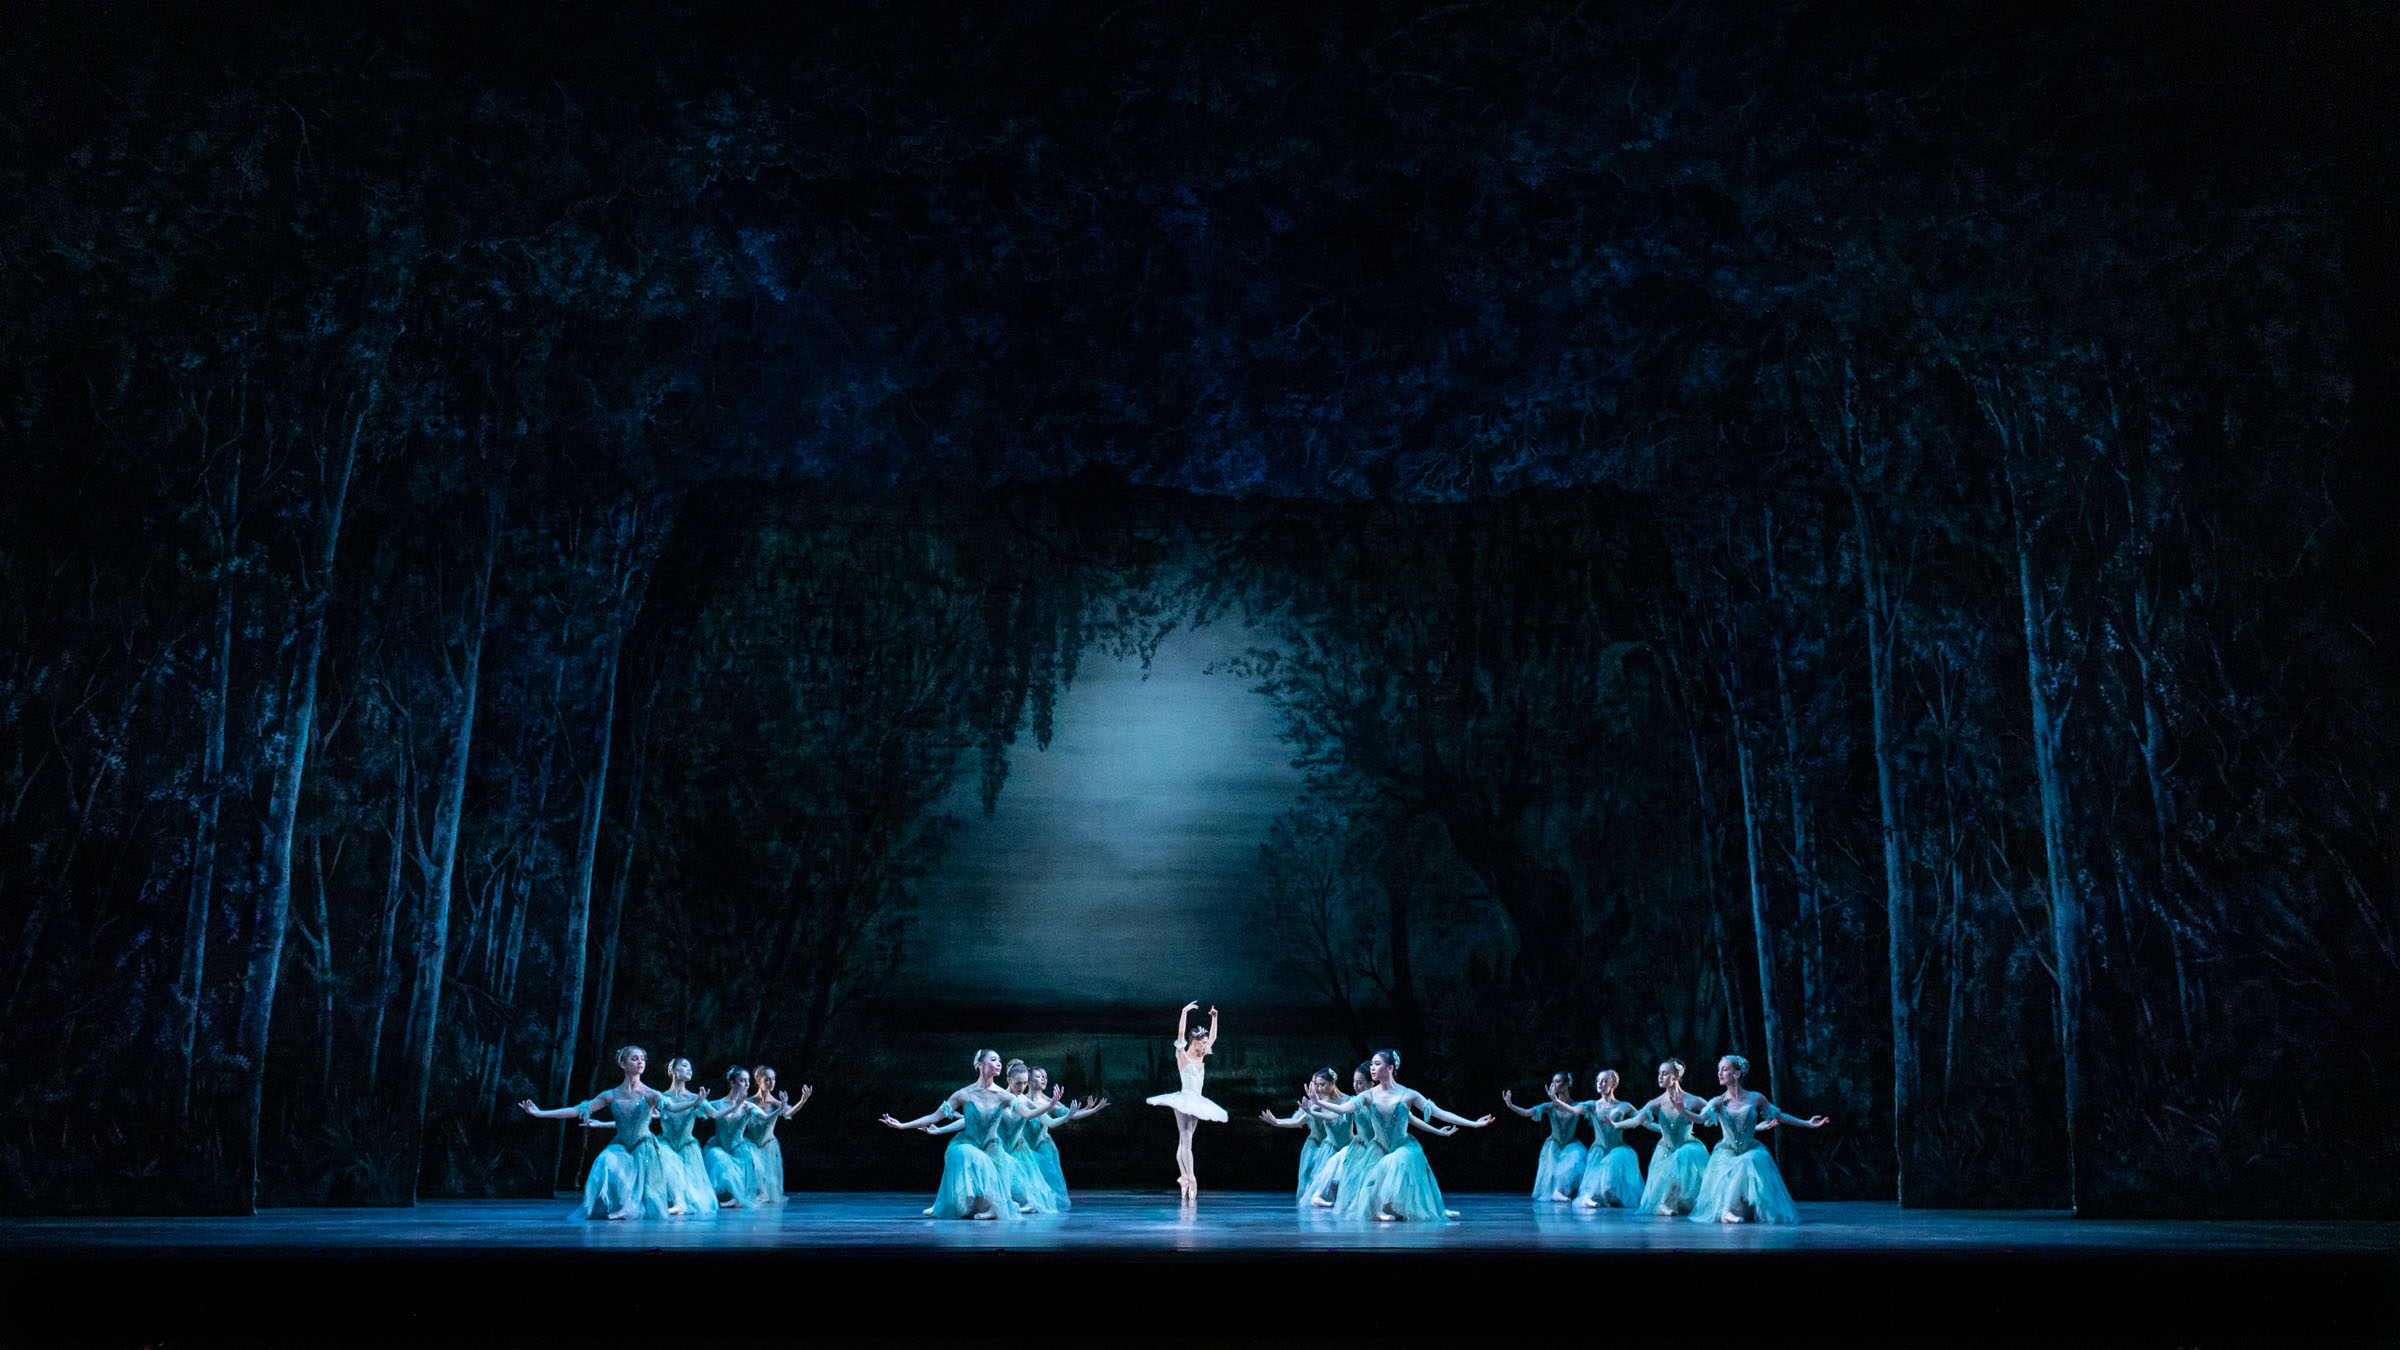 The Sleeping Beauty at The Royal Opera House